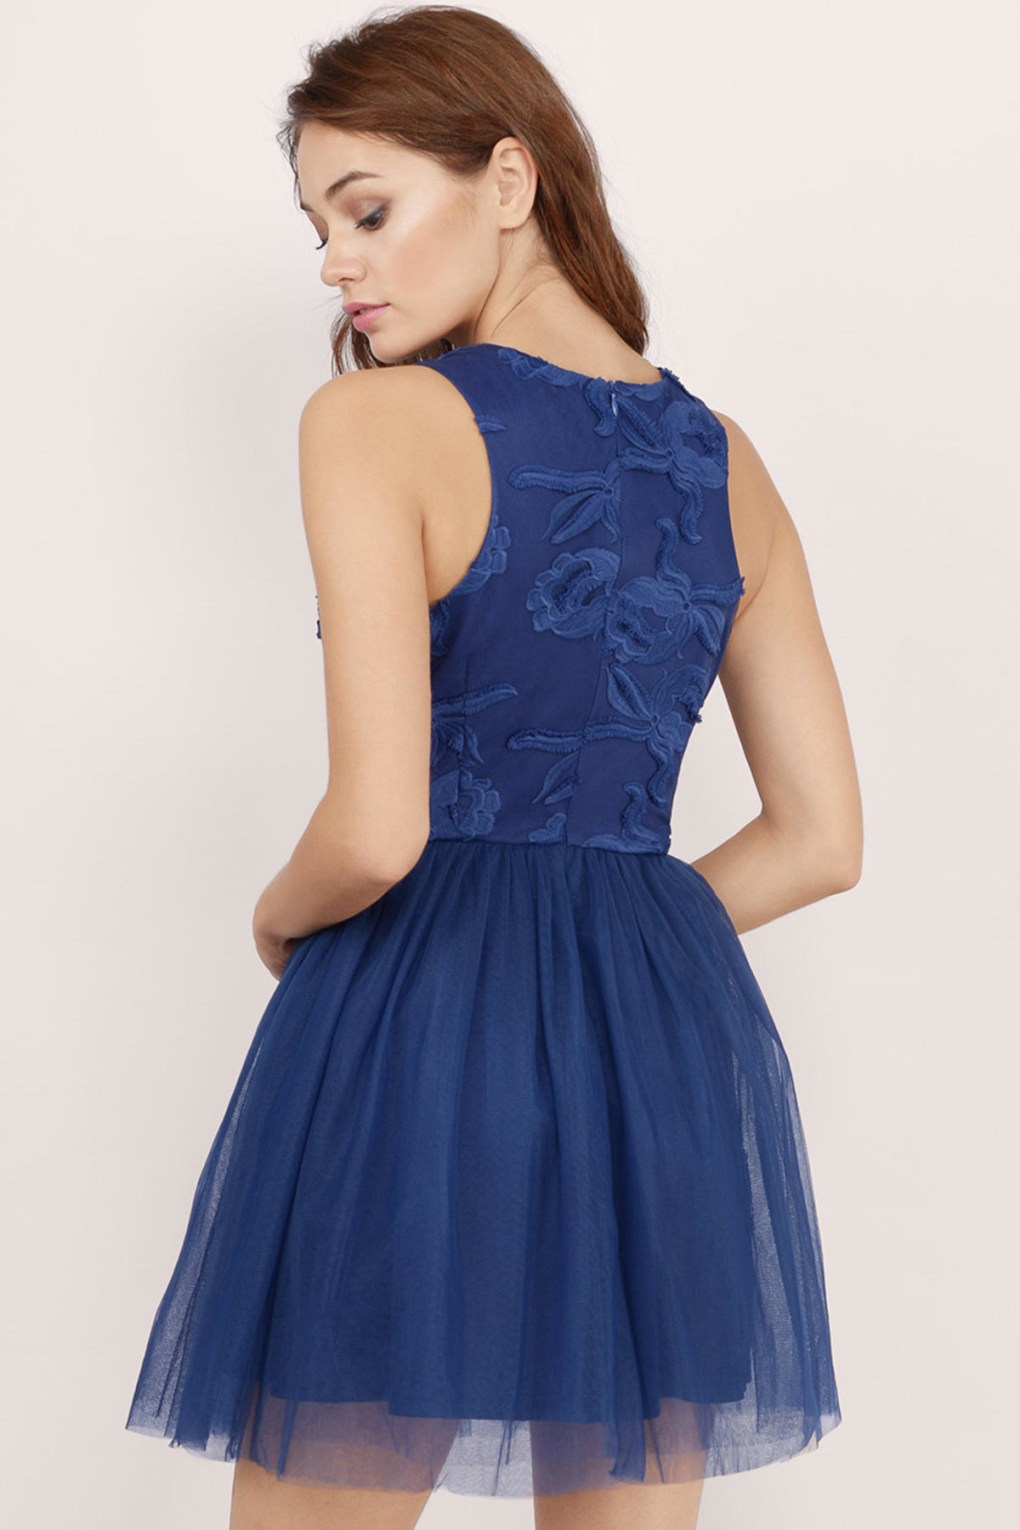 26 Beautiful Dresses Under $30 To Wear To Any Fall Wedding